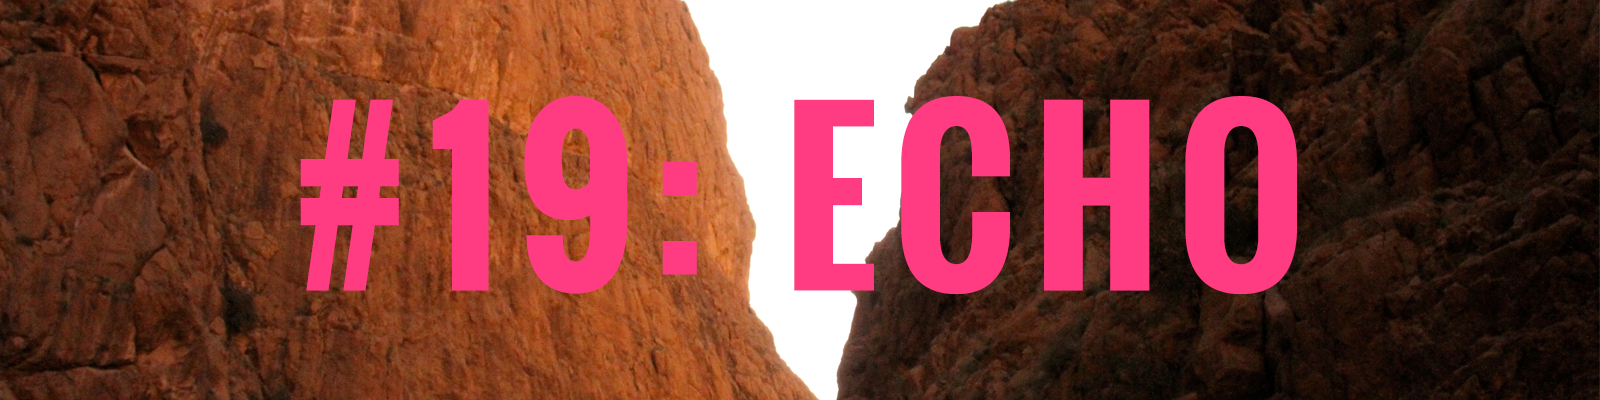 A photograph taken from the base of a canyon of rust-red rock. A triangle of white sky can be seen between the two canyon sides, creating a central focal point for the image. Overlayed on this image is bold, bright pink text that reads '#19: ECHO'.